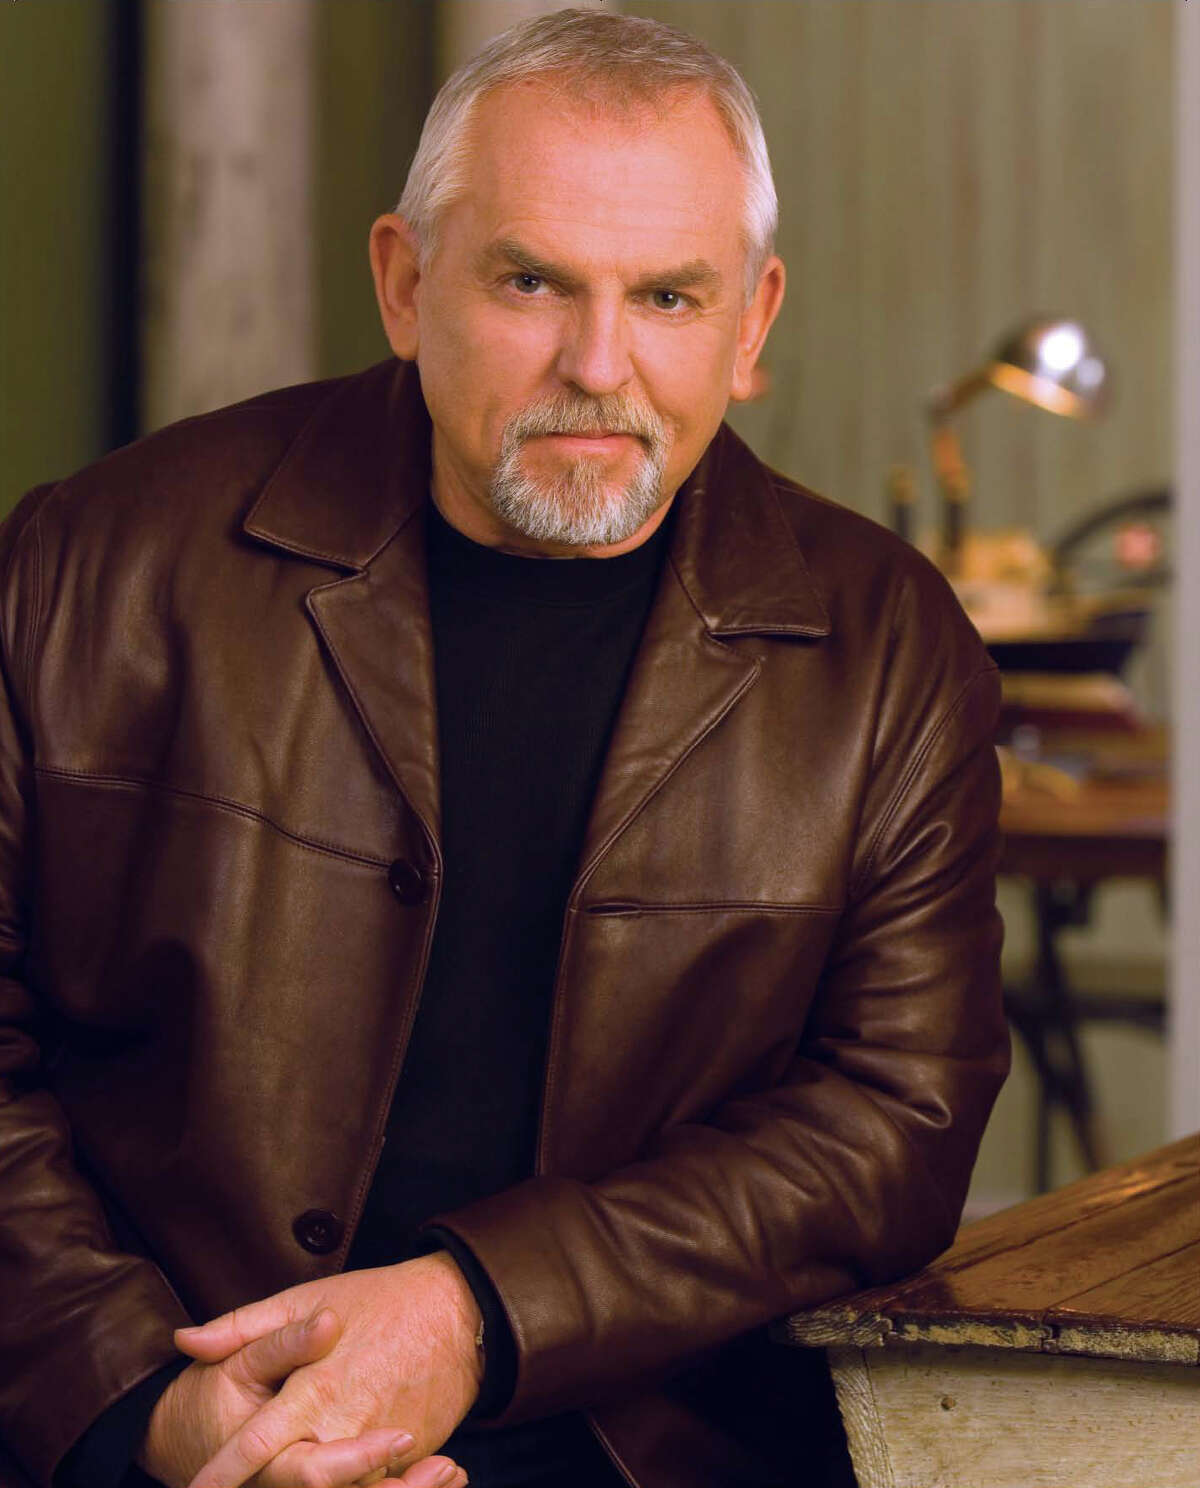 Bridgeport nativeJohn Ratzenberger celebrates his birthday on April 6, 2016. To celebrate, we're taking a look back at some of Ratzenberger's most notable roles.